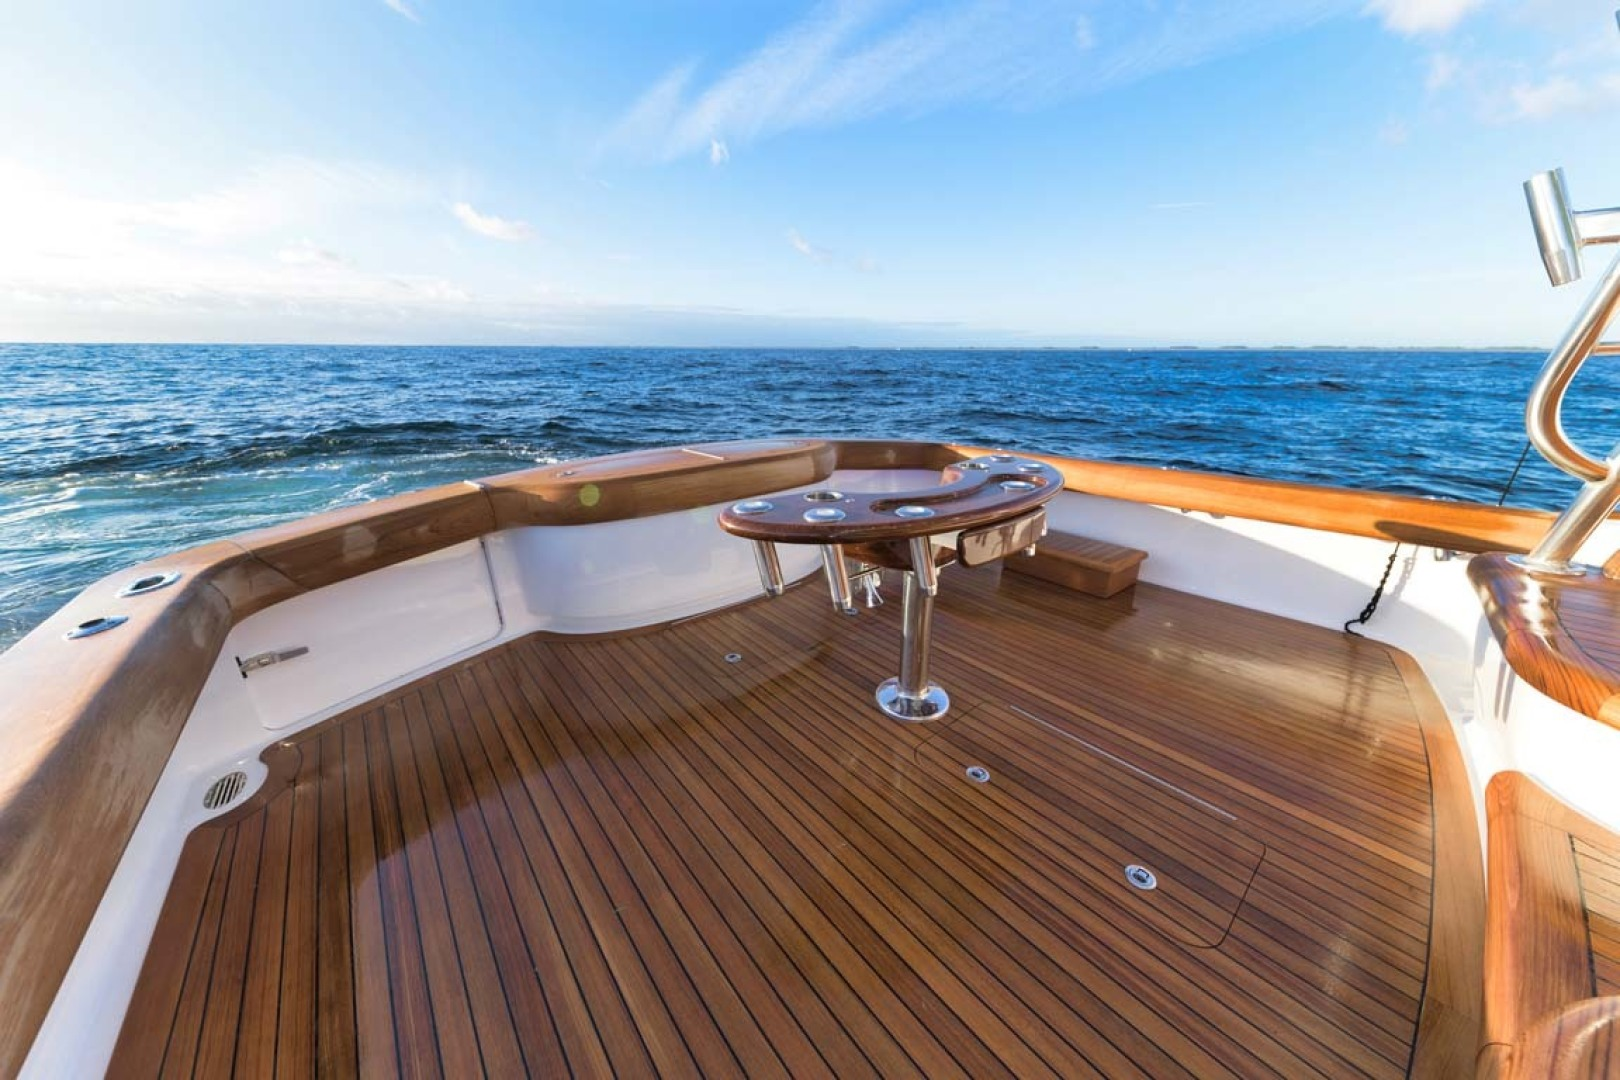 Winter Custom Yachts-46 Walkaround 2019-Family Circus Stuart-Florida-United States-Walk-Around Deck Layout with Single Level Design (No Steps or Obstacles)-1563780 | Thumbnail